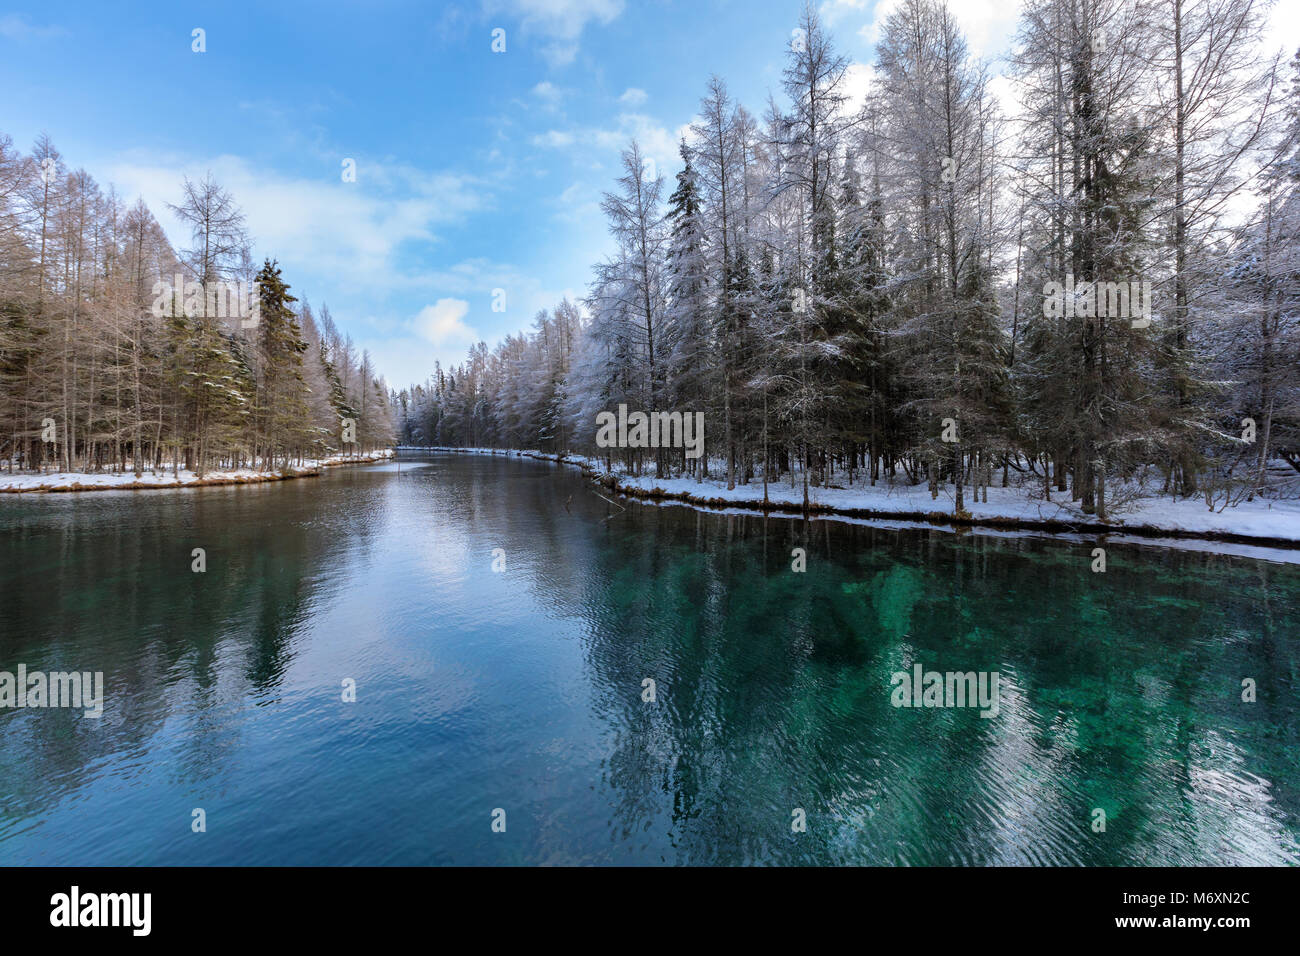 Kitch-iti-kipi Springs in the Upper Peninsula of Michigan, also known as the Big Spring at Palms Book State Park, Stock Photo